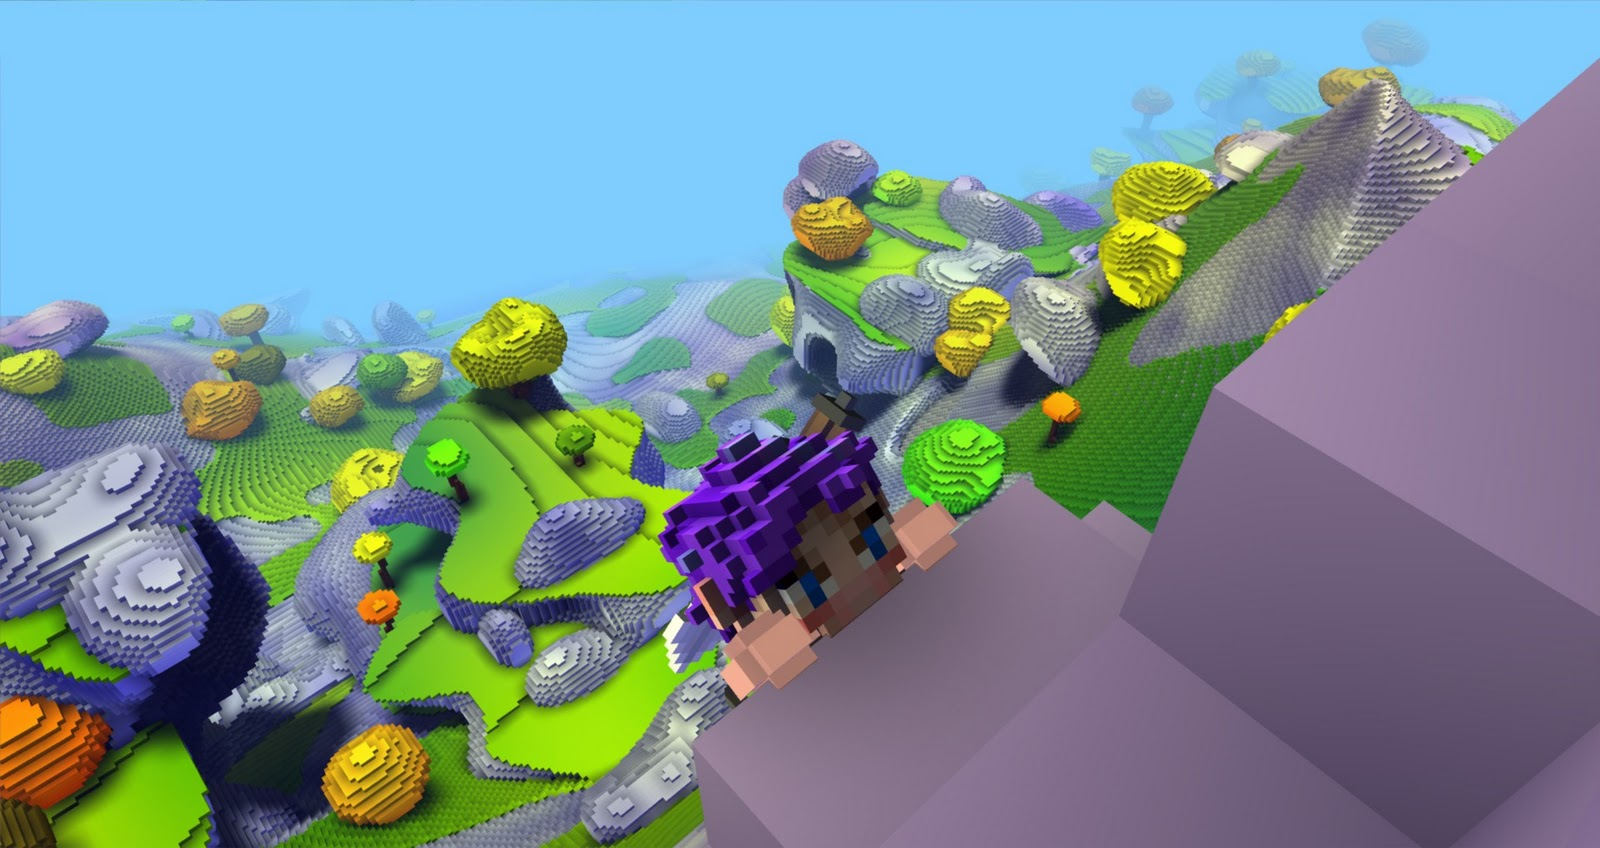 Climbing in Cubeworld